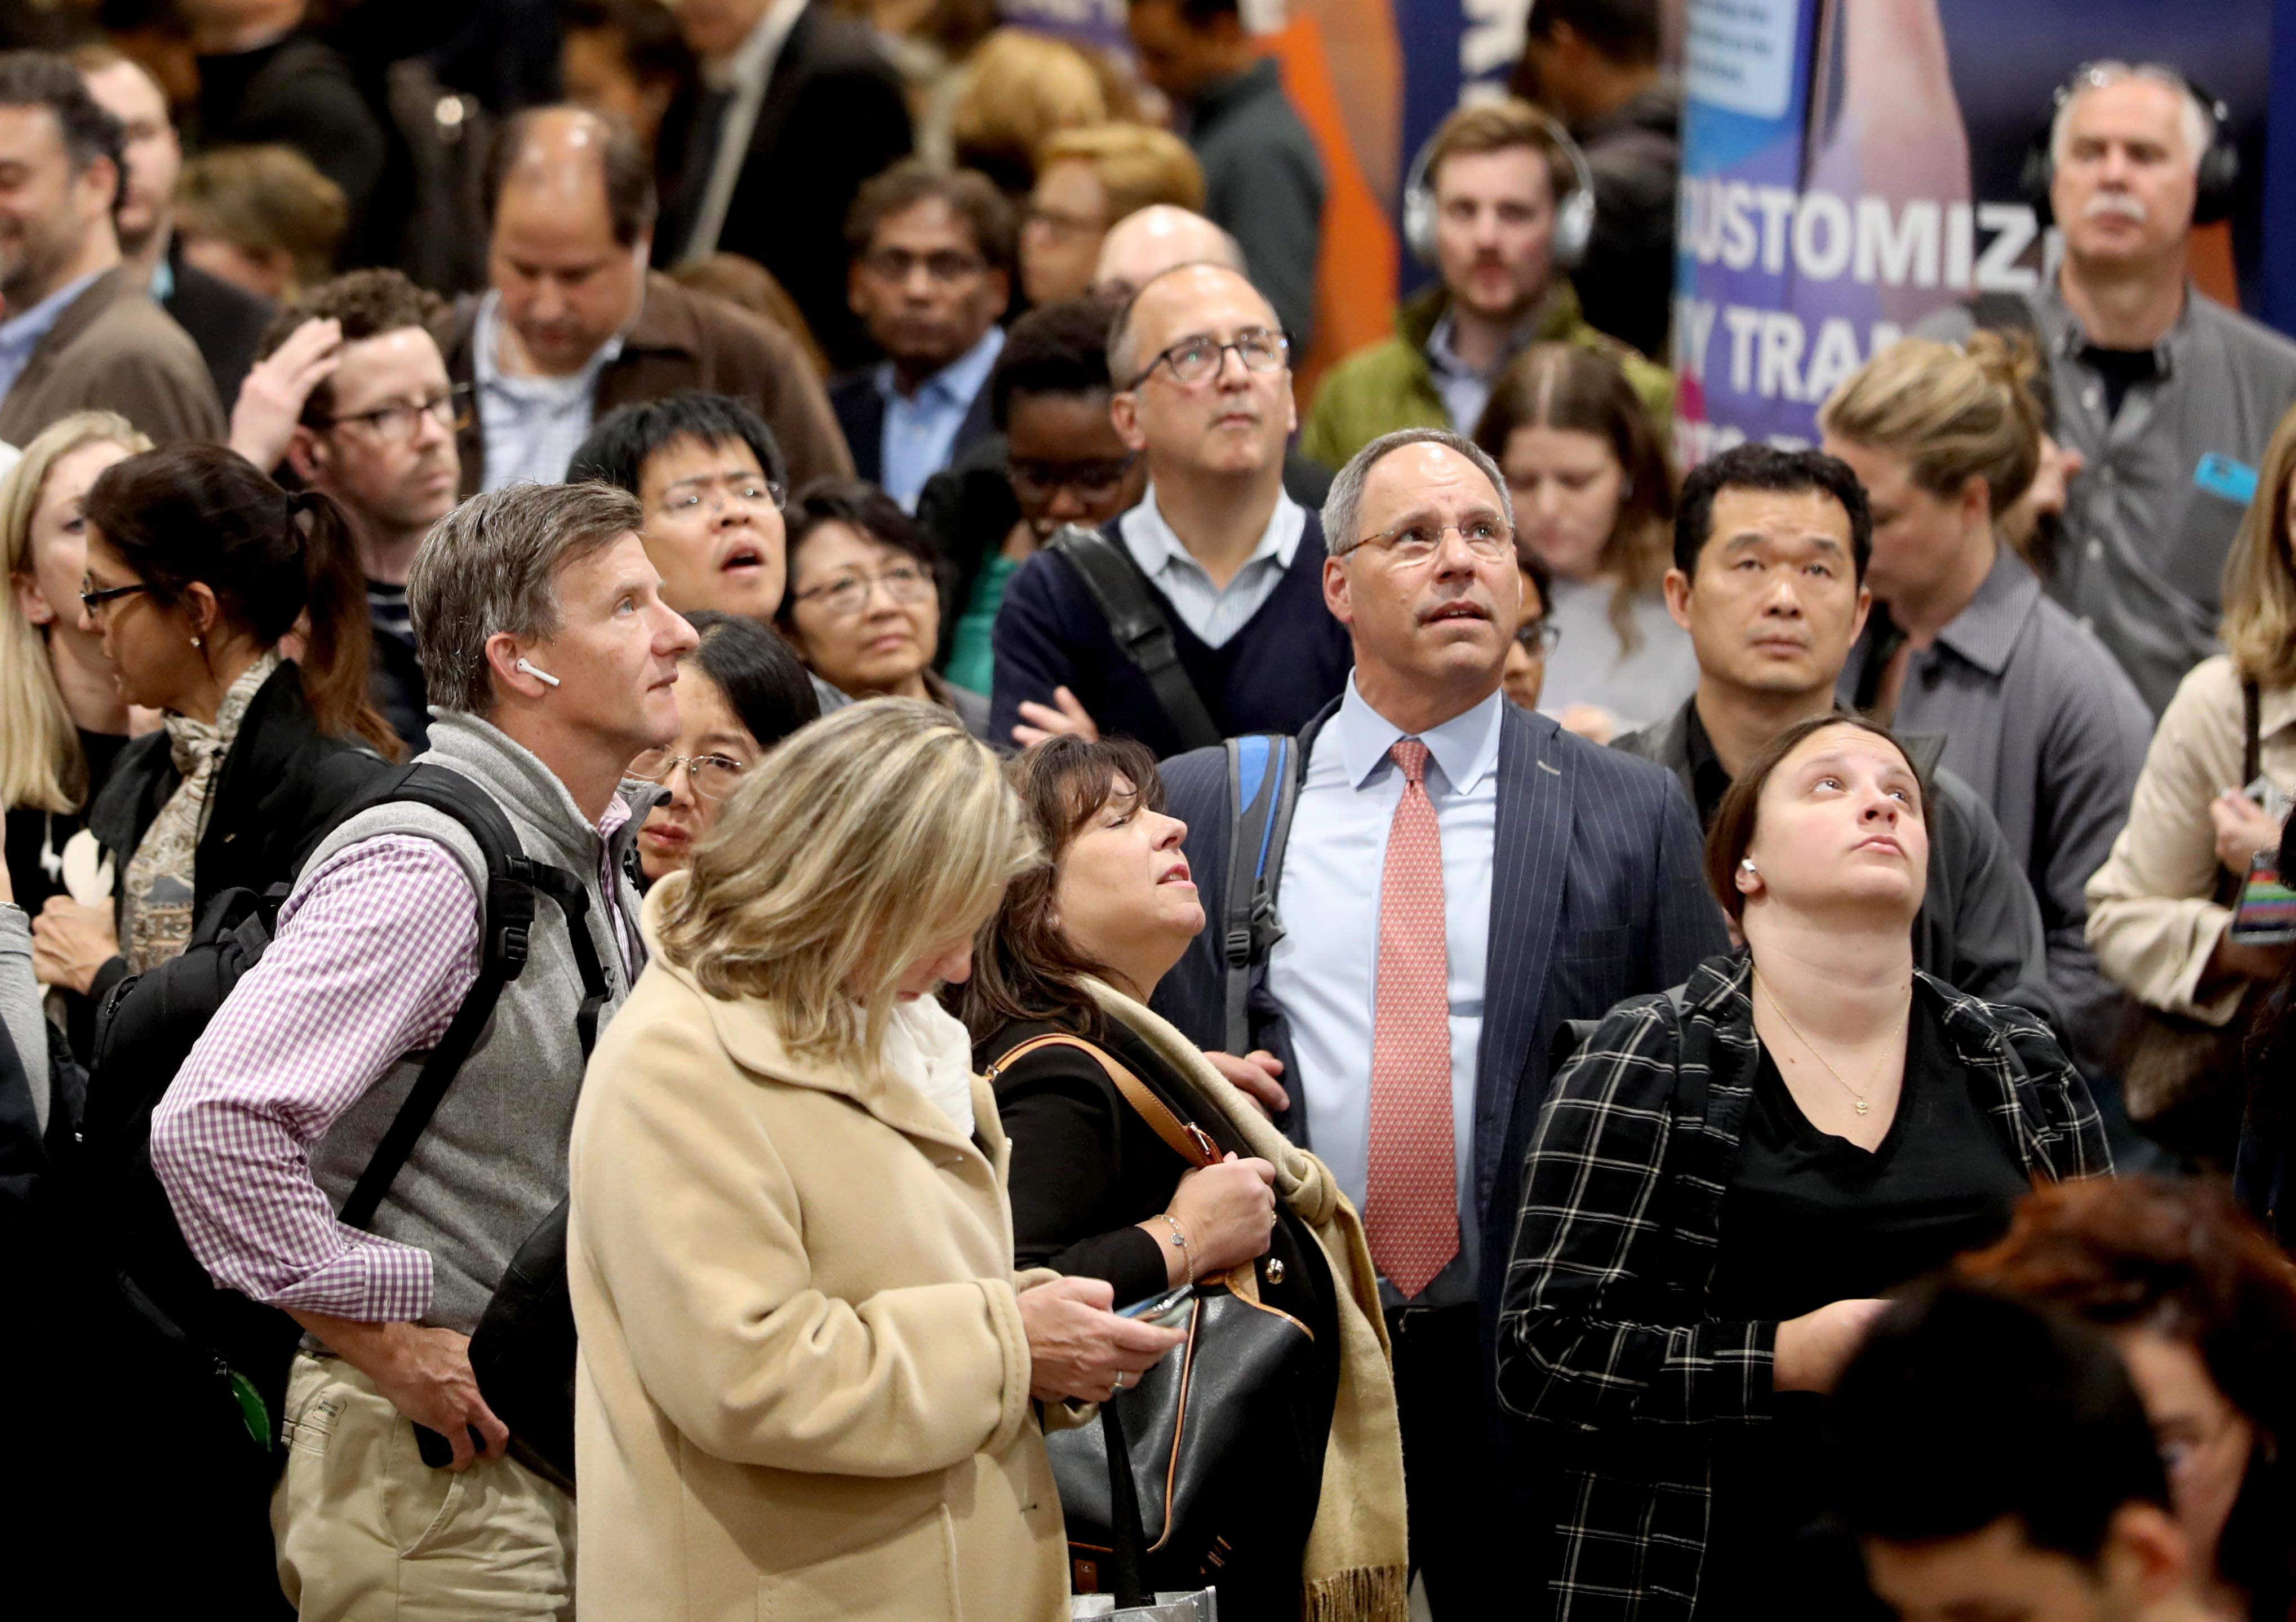 Commuters crowd under train schedule boards in Penn Station waiting to find out what track their homebound train would be departing from during the evening commute Oct. 23, 2019. Once track locations appear on the boards, commuters rush to their gates, with sometimes only minutes to spare before their train leaves the station.